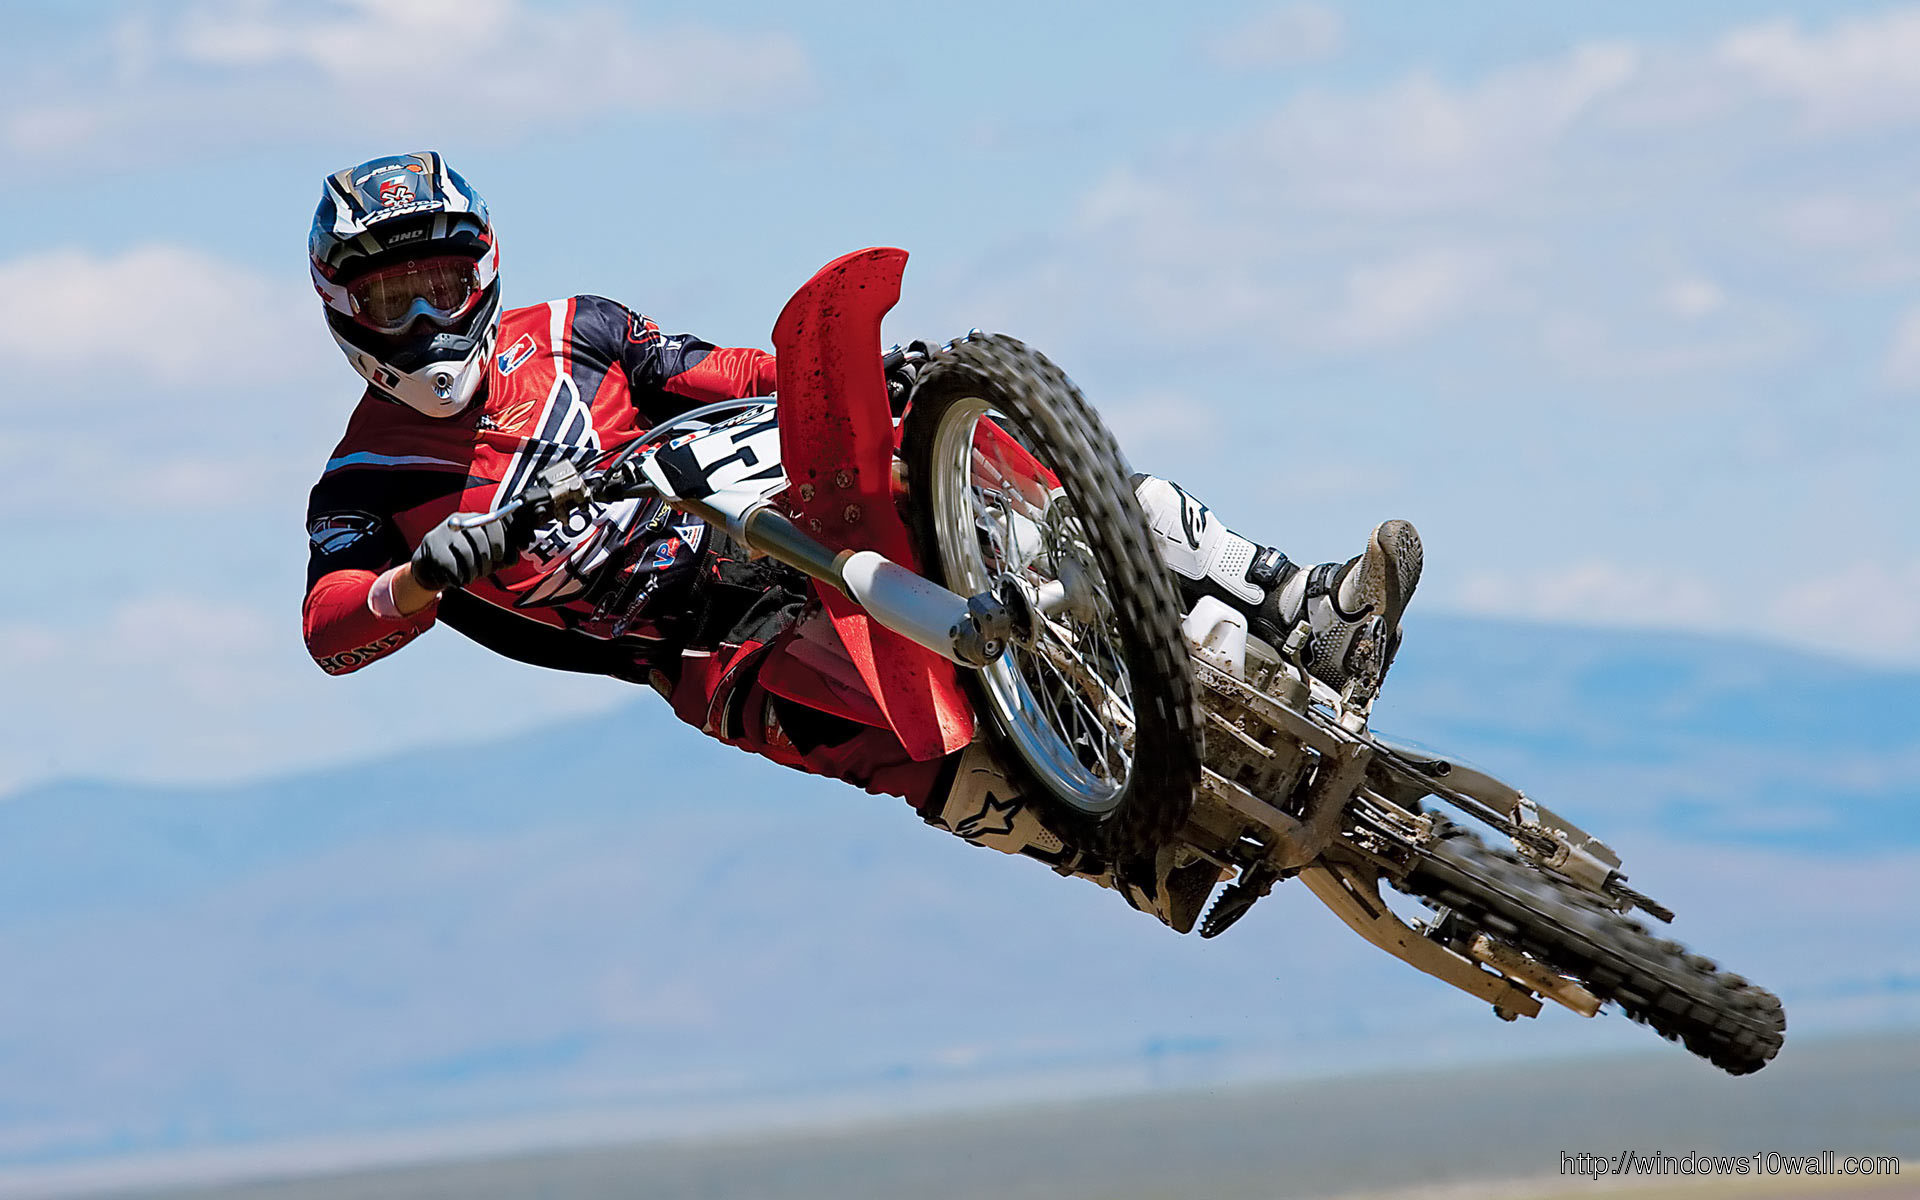 Sports Bike in HD Background Wallpaper 36